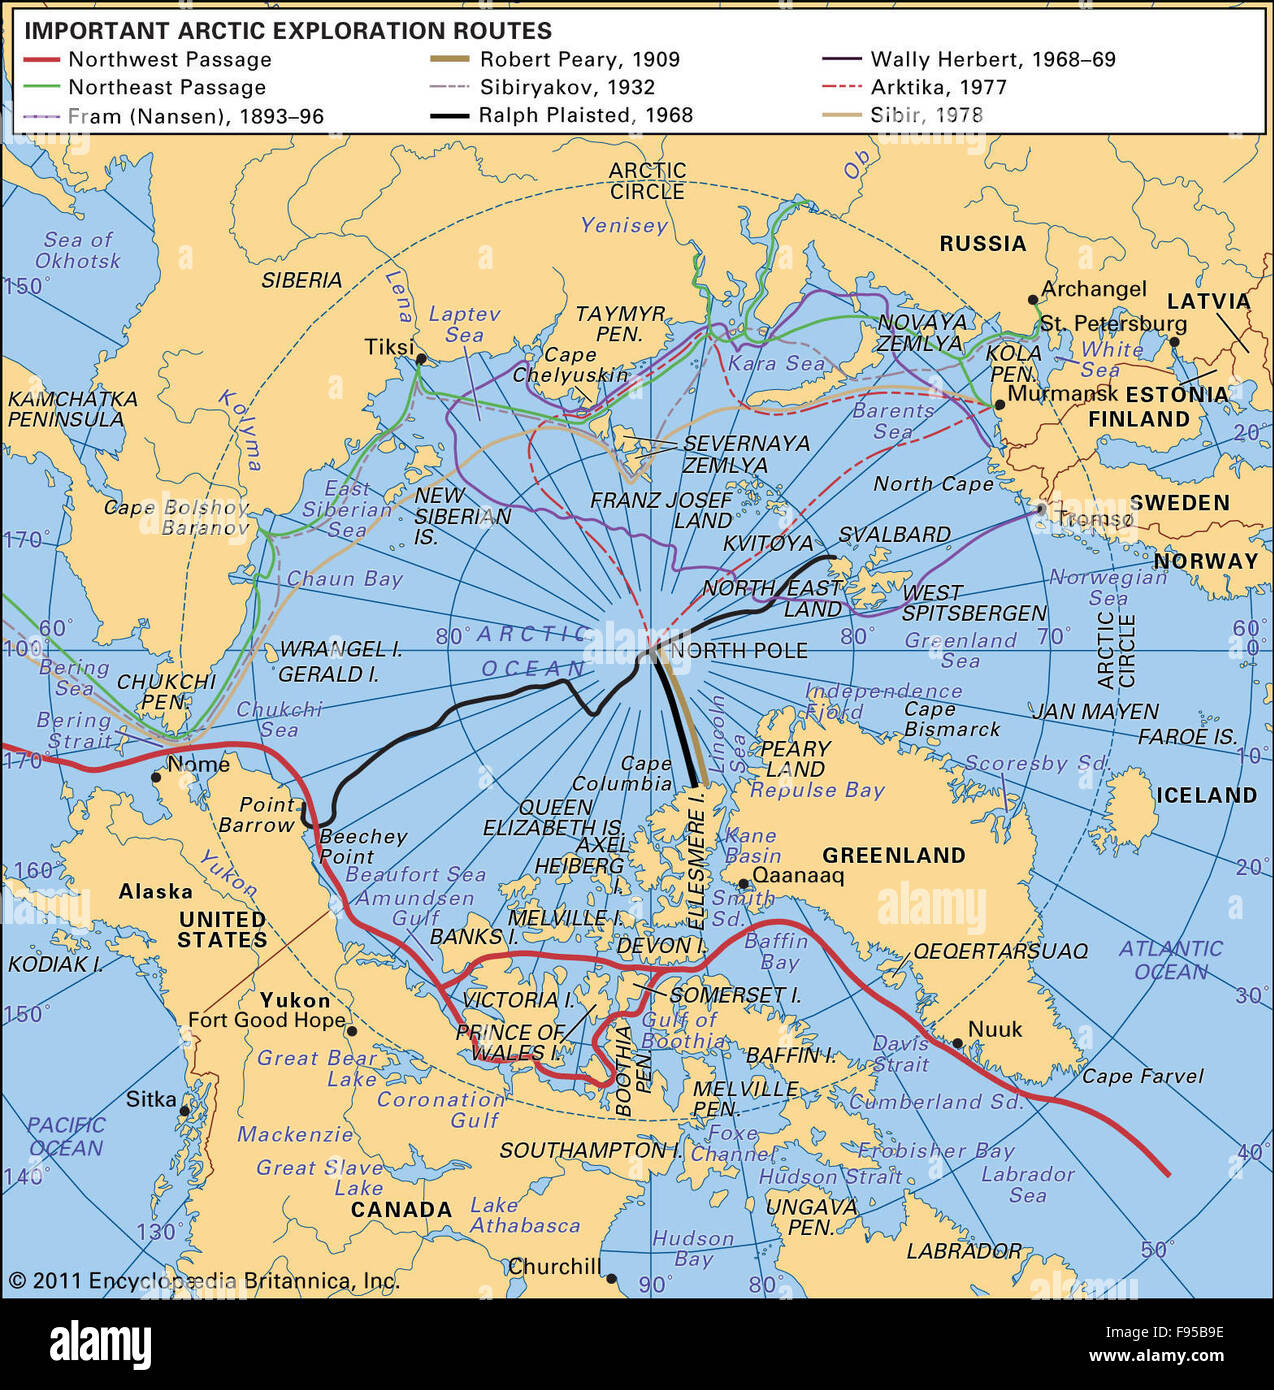 Routes of major Arctic explorations - Stock Image